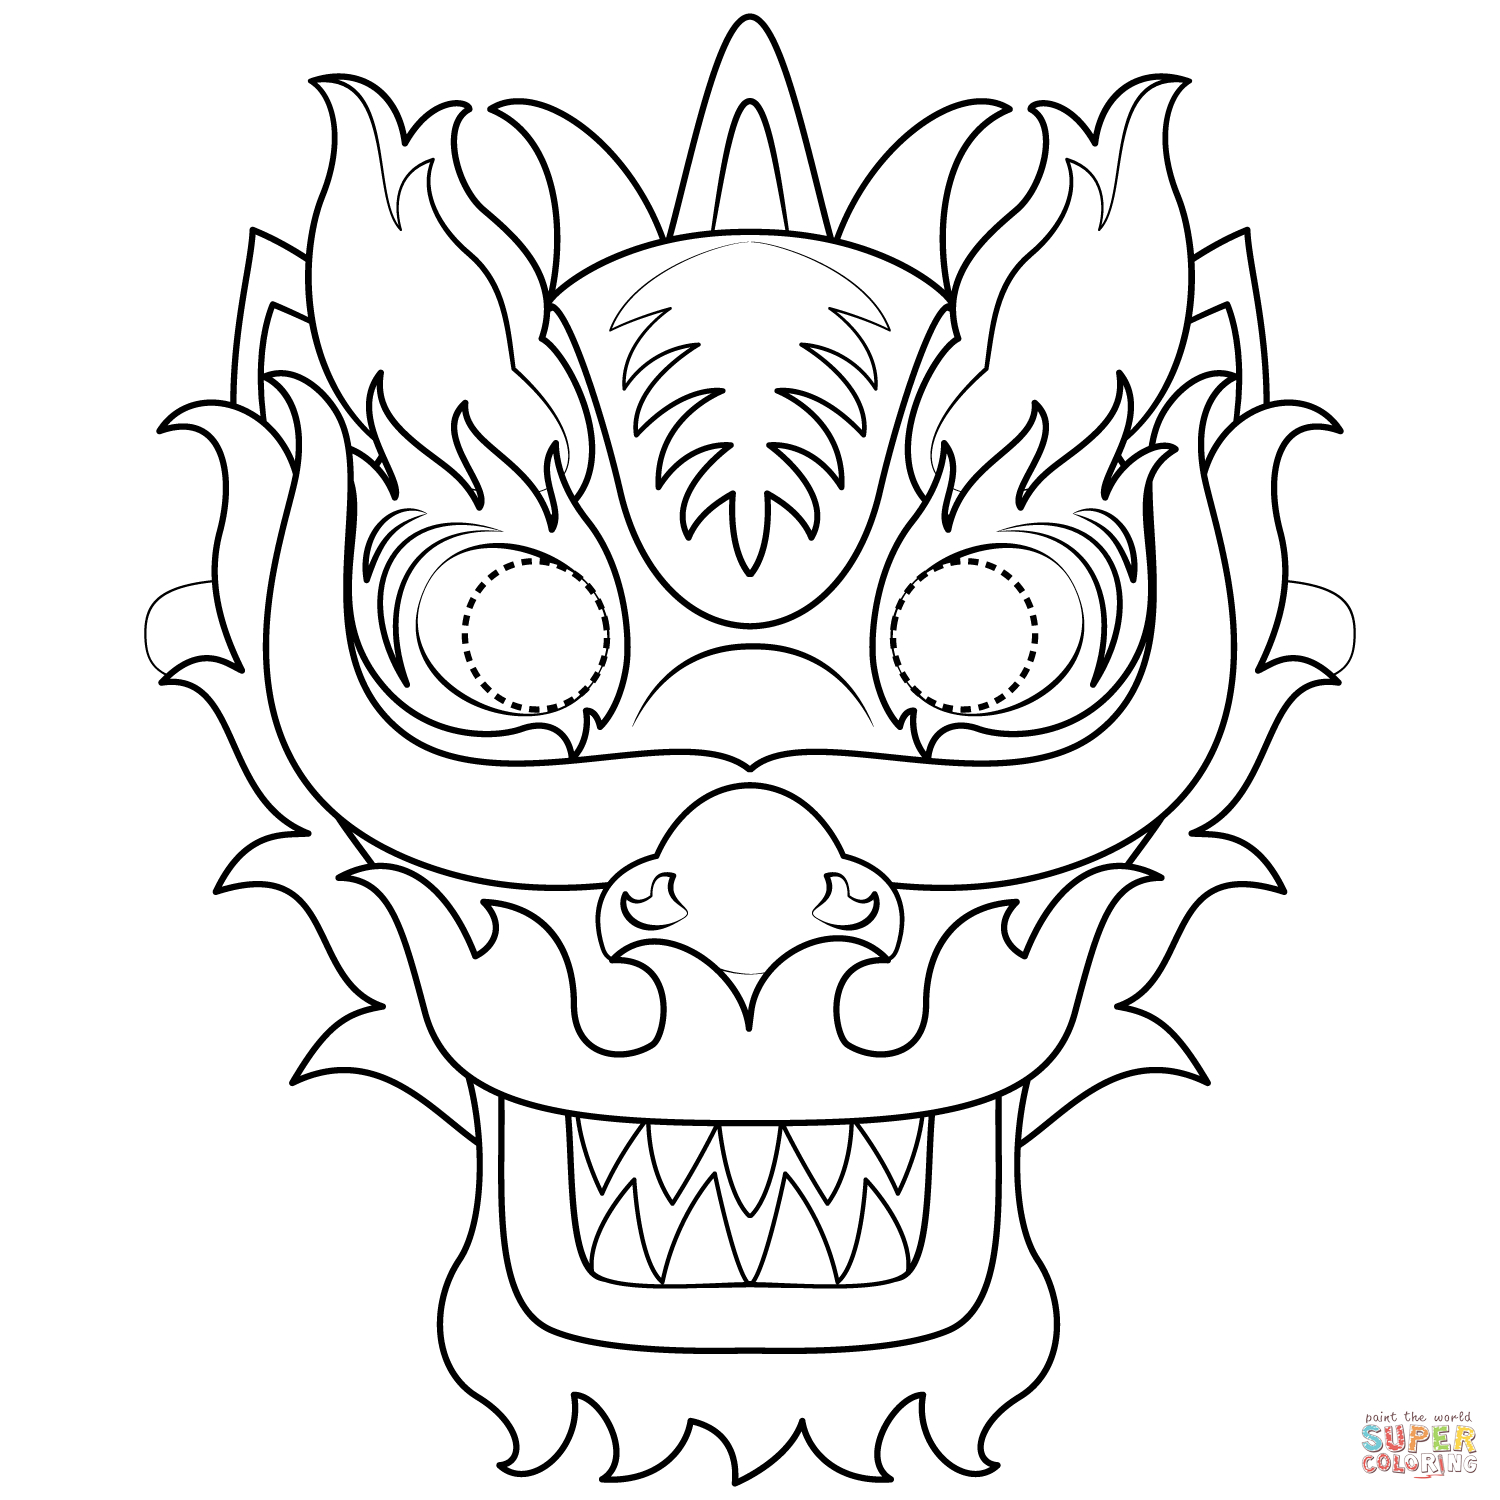 Chinese New Year Dragon Mask Coloring Page | Free Printable Coloring - Dragon Mask Printable Free